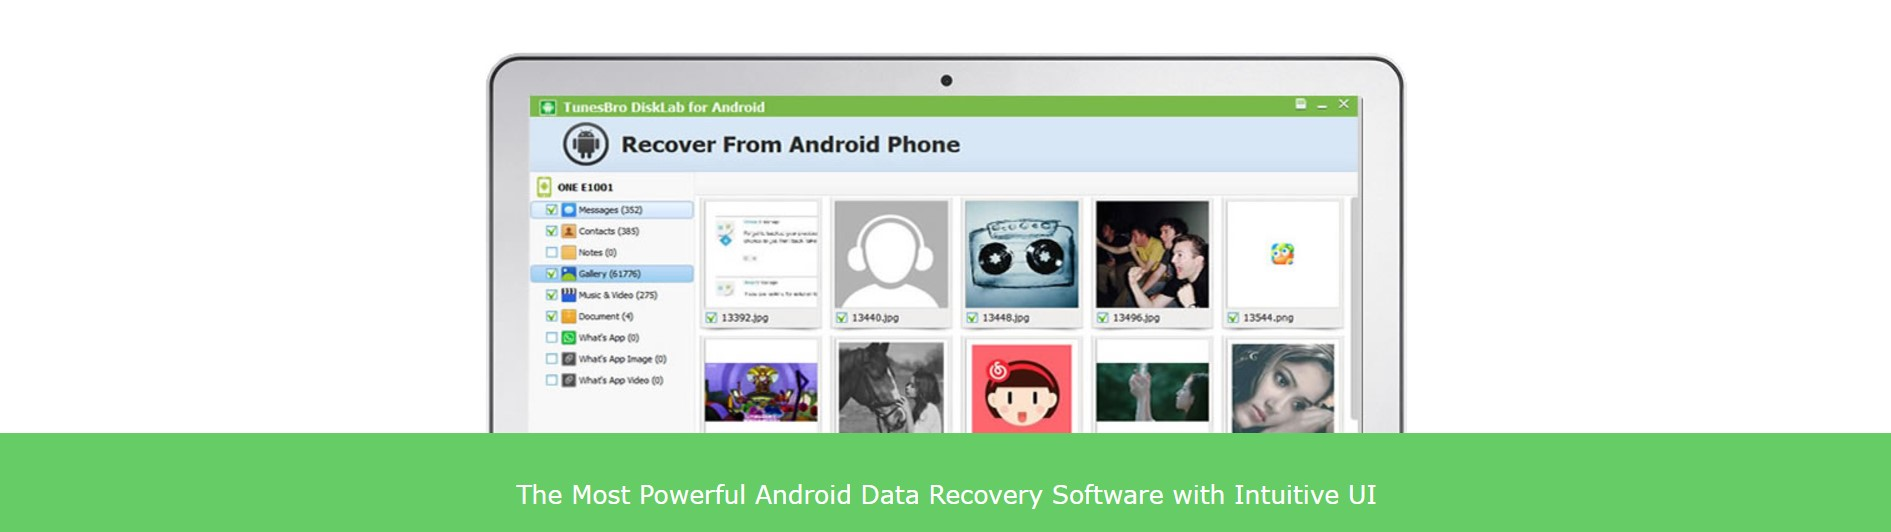 TunesBro DiskLab for Android: A Powerful Program to Recover Deleted Files on Android